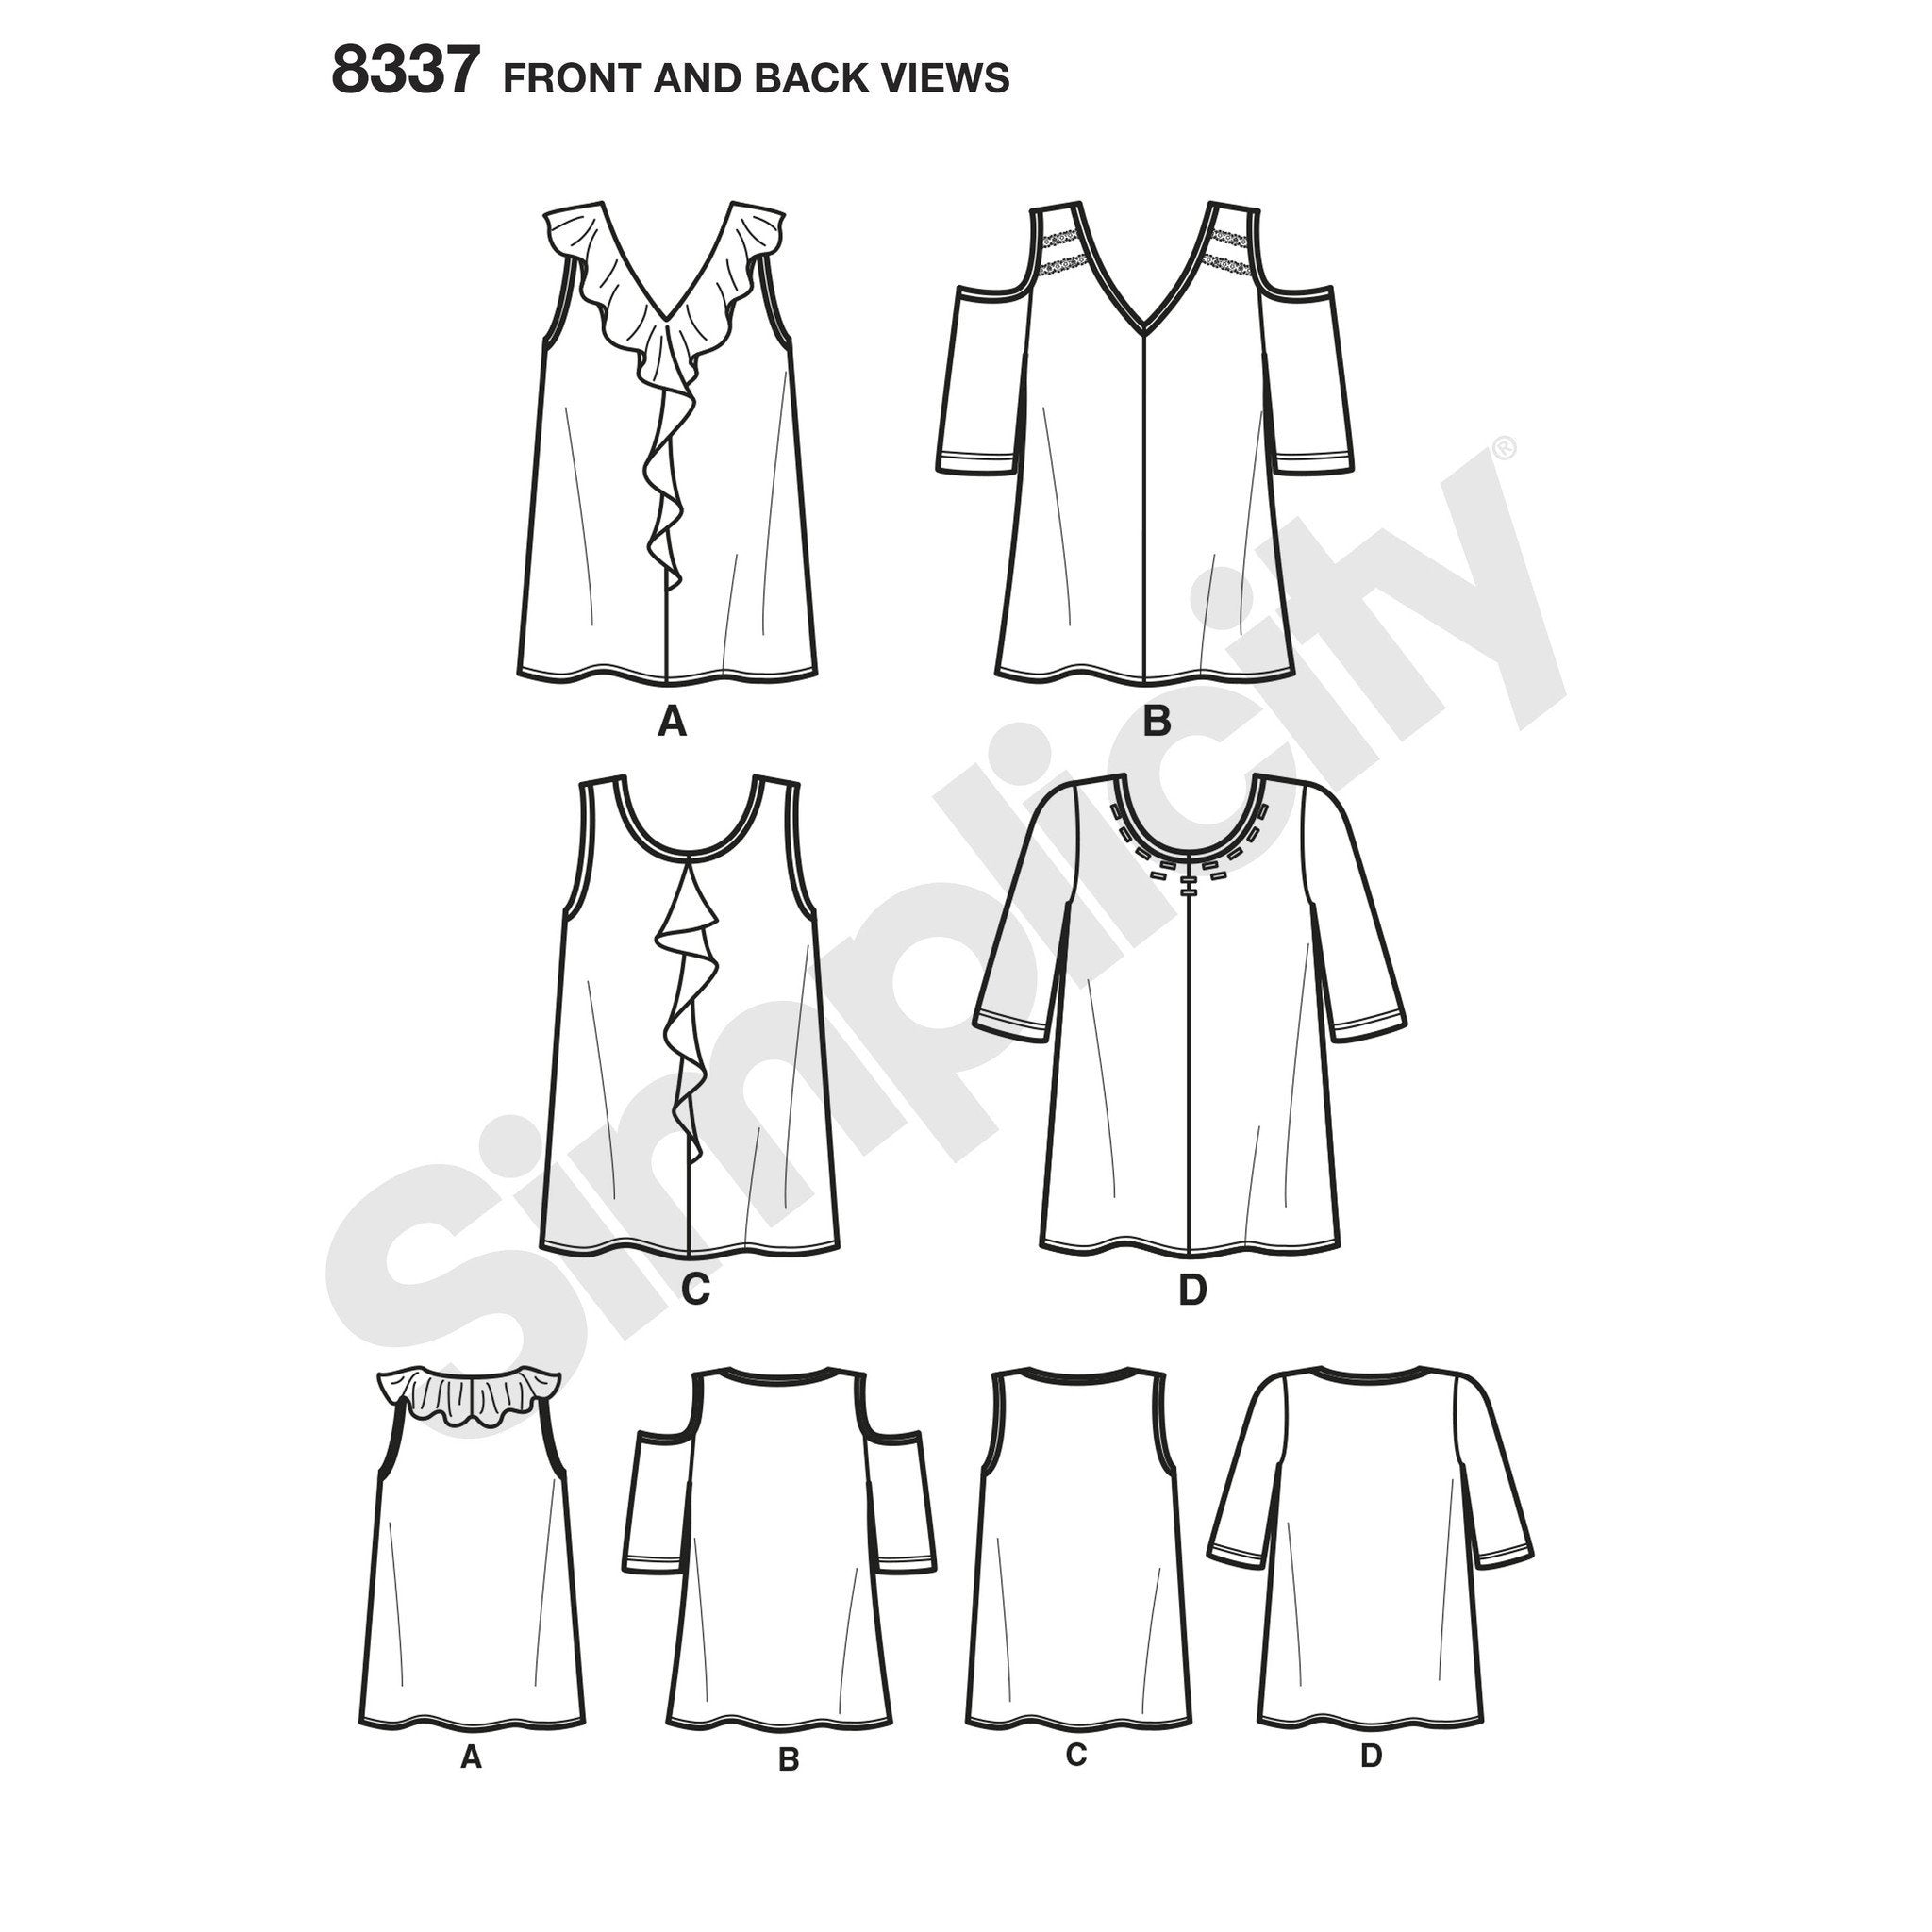 S8337 Misses' Knit Tops with Bodice and Sleeve Variations